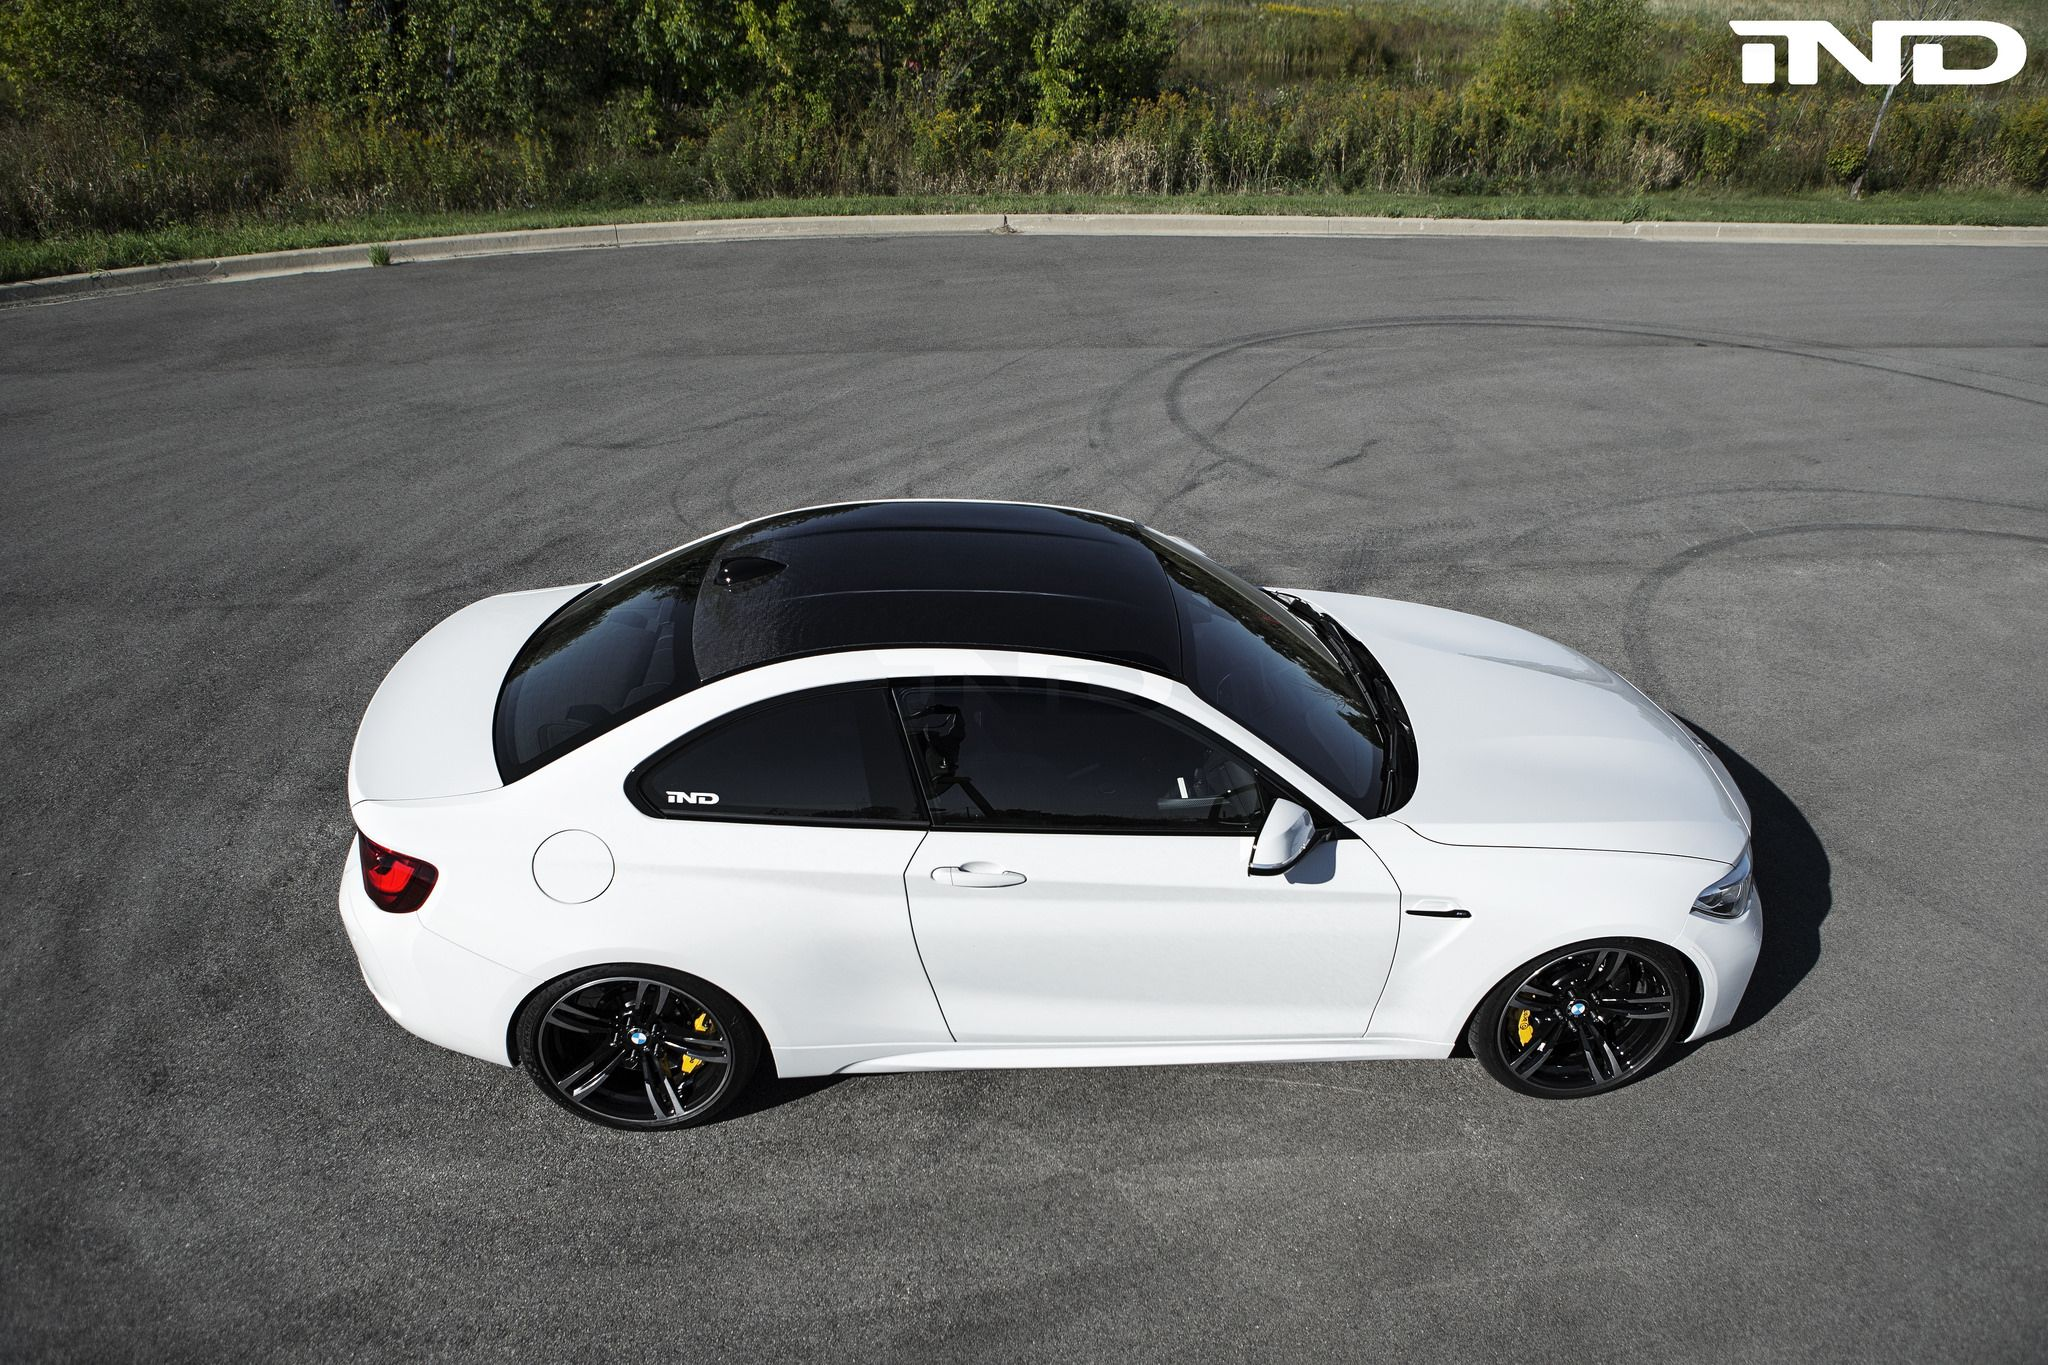 #BMW #F87 #M2 #Coupe #iND #Tuning #AlpineWhite #Angel #Provocative #Eyes #Sexy #Freedom #Badass #Burn #Live #Life #Love #Follow #Your #Heart #BMWLife